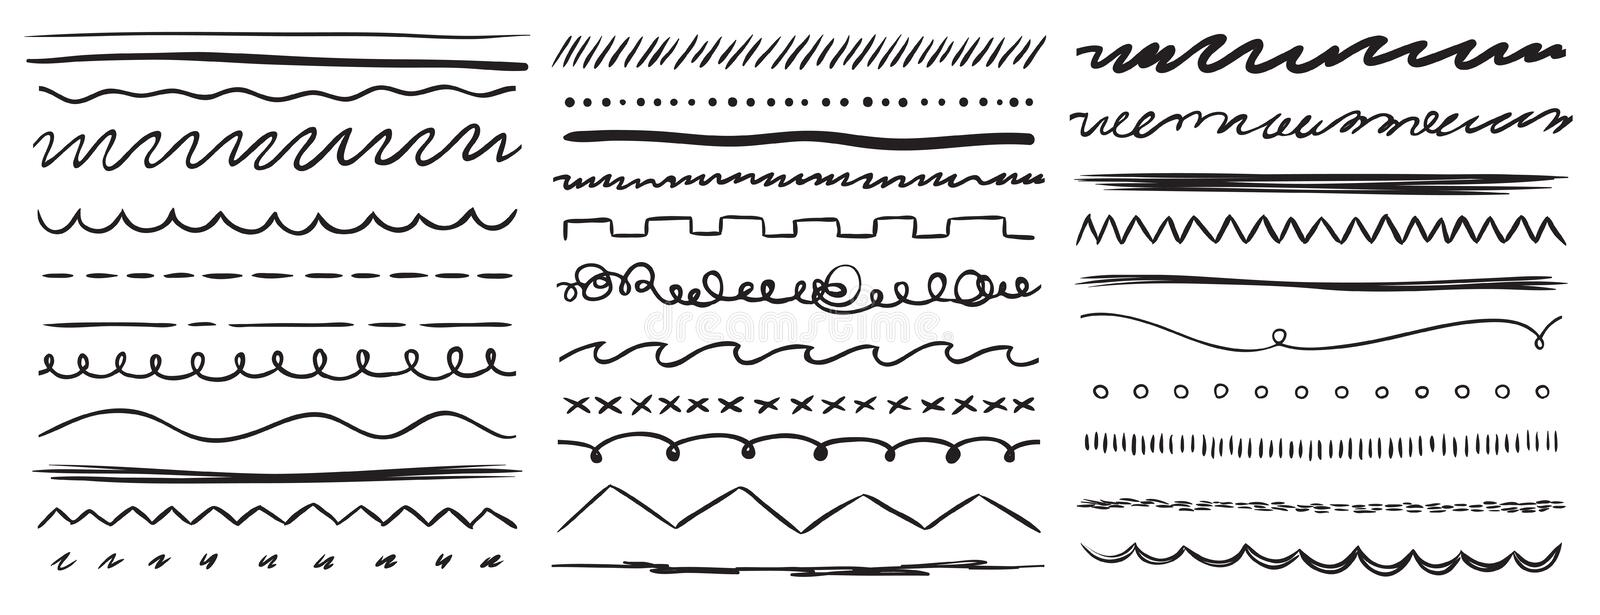 Hand drawn lines. Marker line divider, handmade pencil strokes brush and drawing dividers vector elements set vector illustration